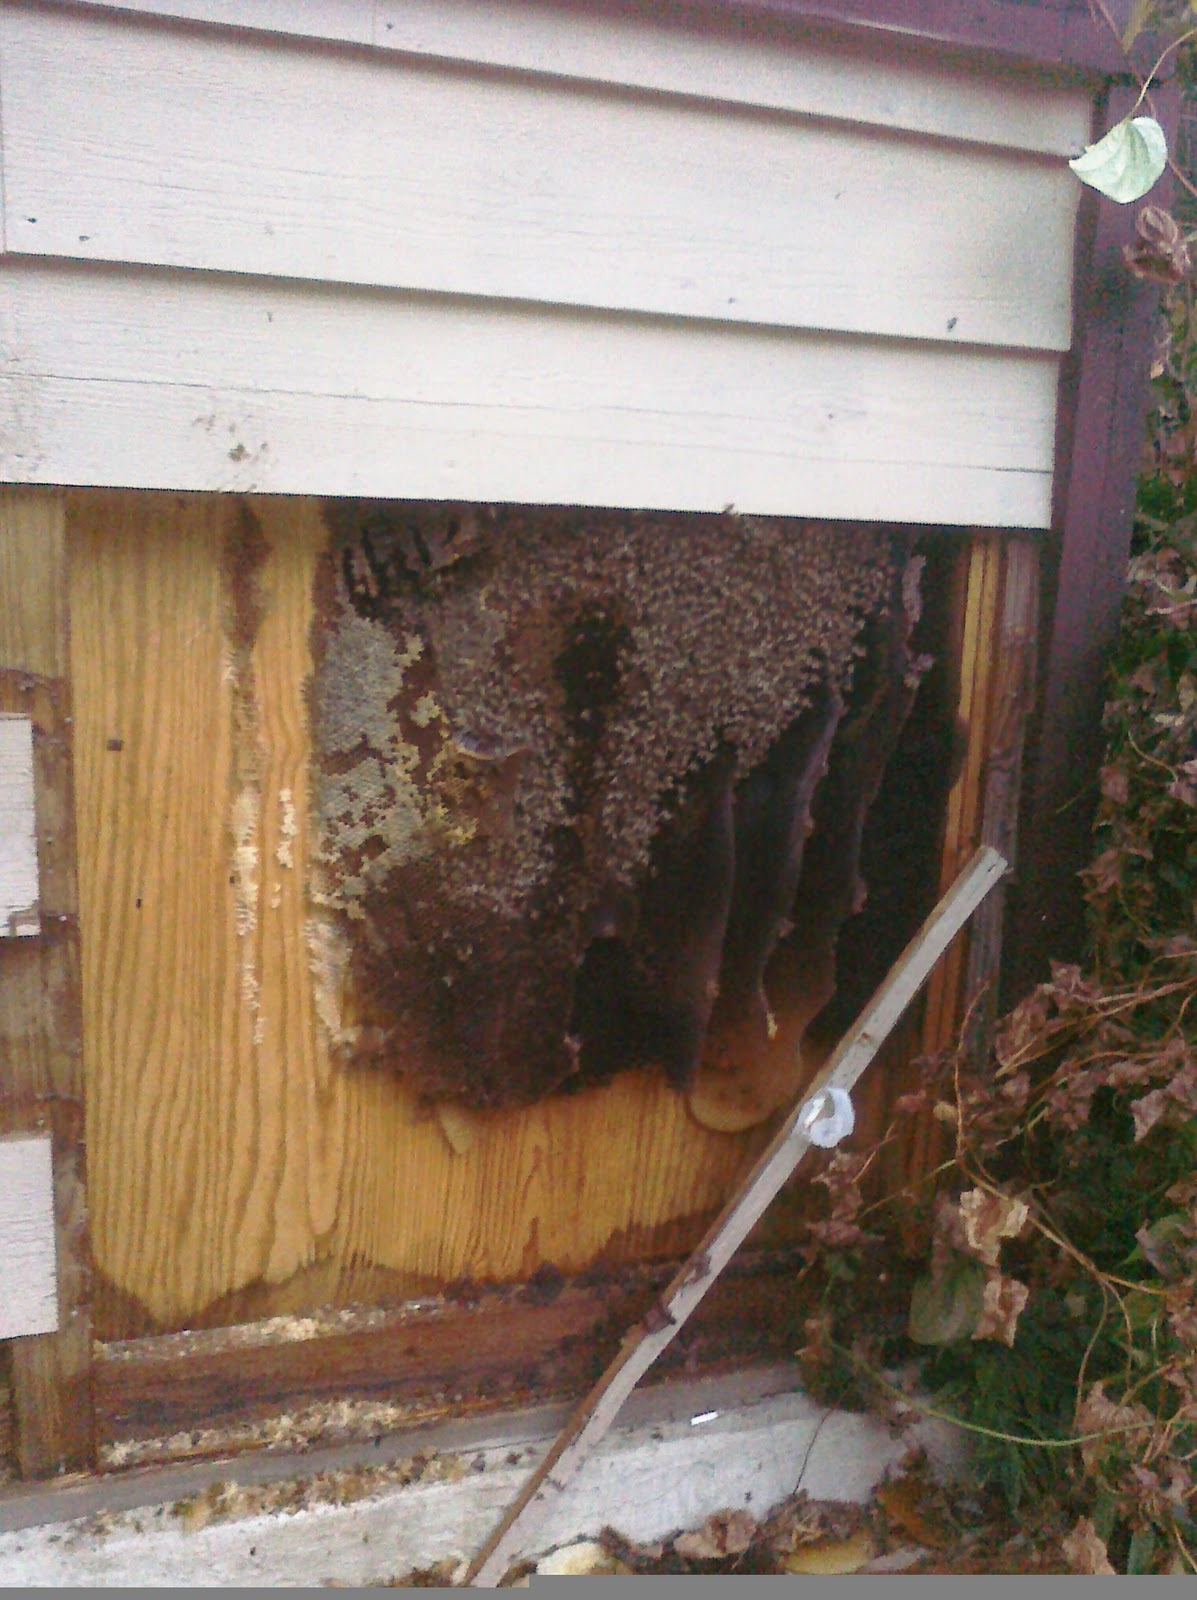 bees around front door in Orchard Hill - GA Honey Bee Removal Georgia